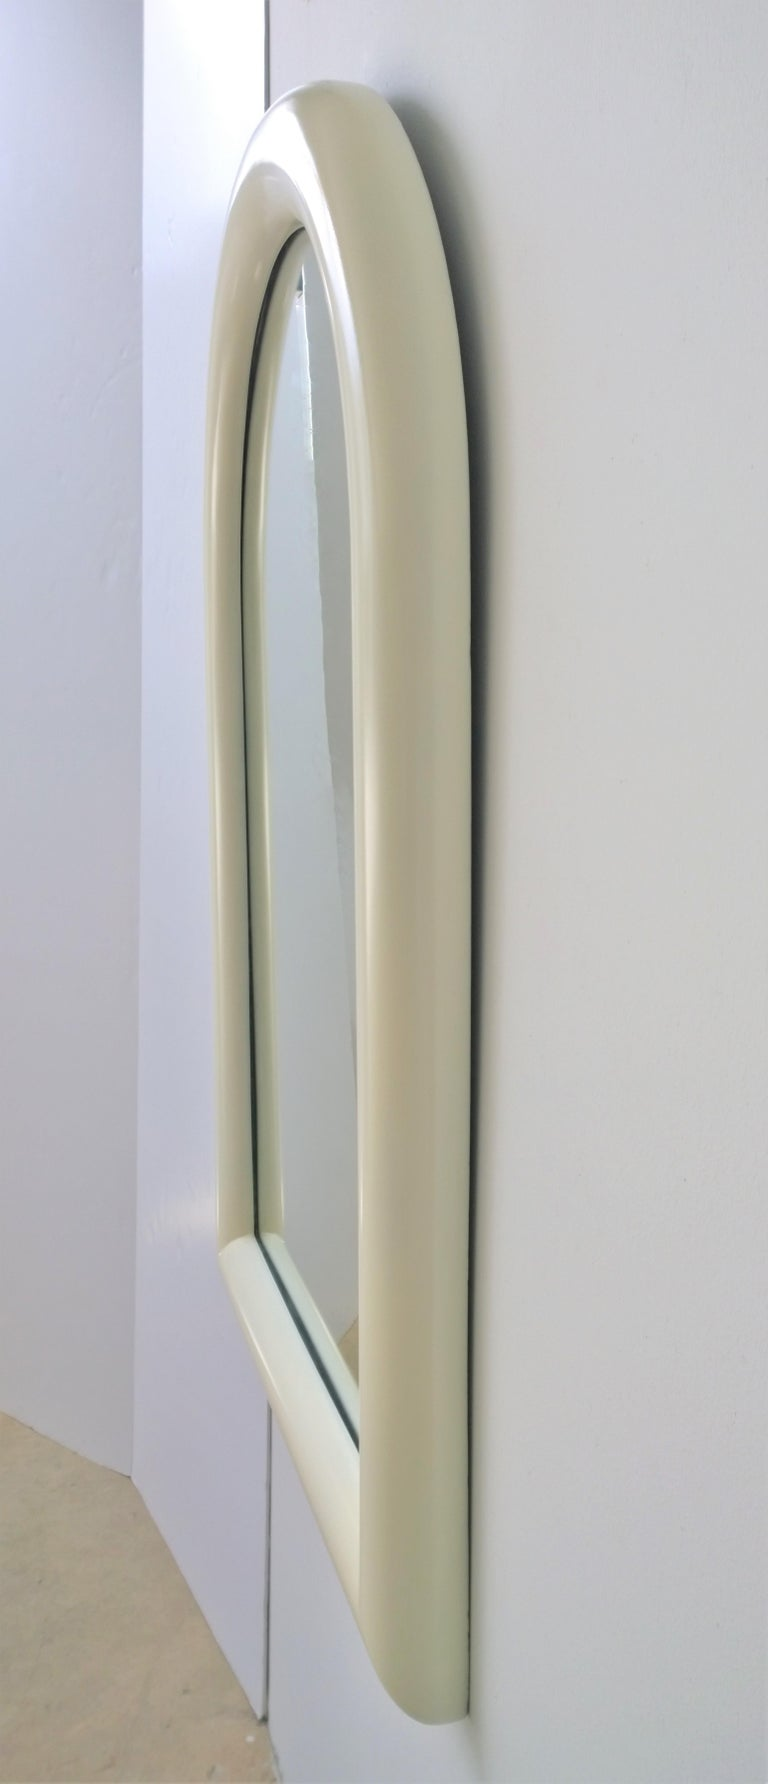 Beveled Pierre Cardin Attributed Arched Wall Mirror Newly Lacquered Wood in Off-White For Sale